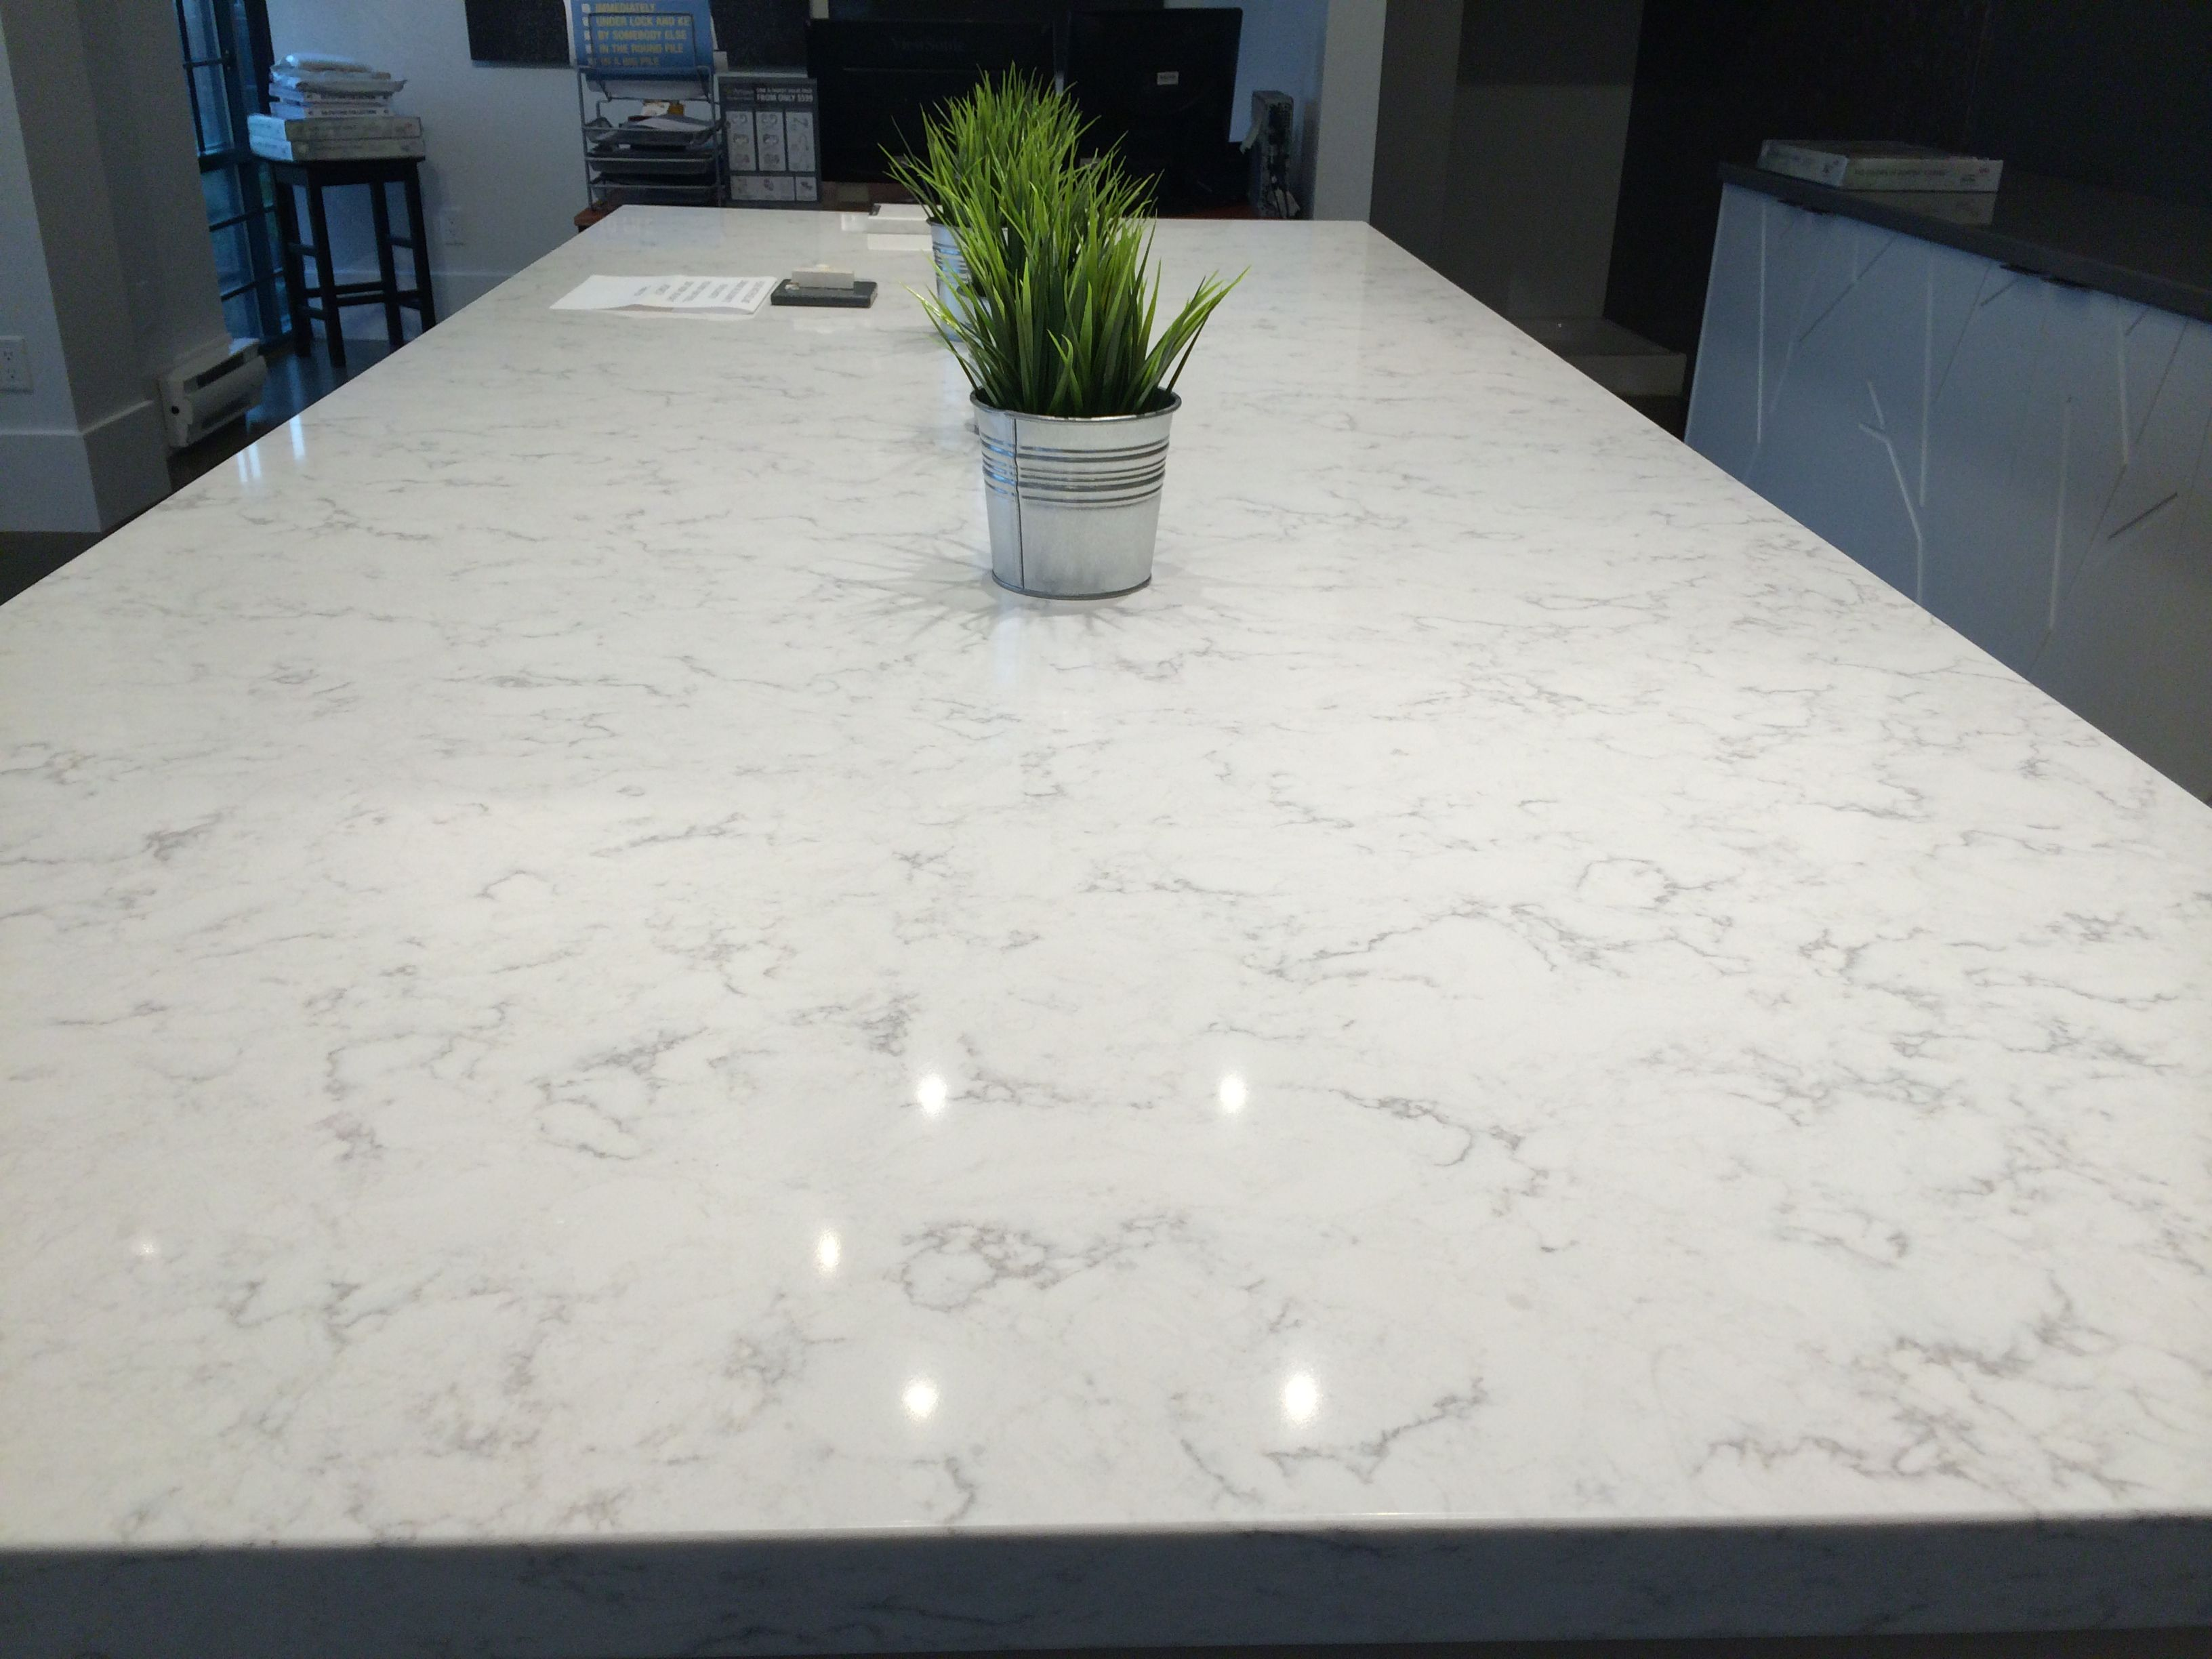 The Current Dark, Formica Countertops Will Be Replaced With LG Minuet Quartz  That Looks A